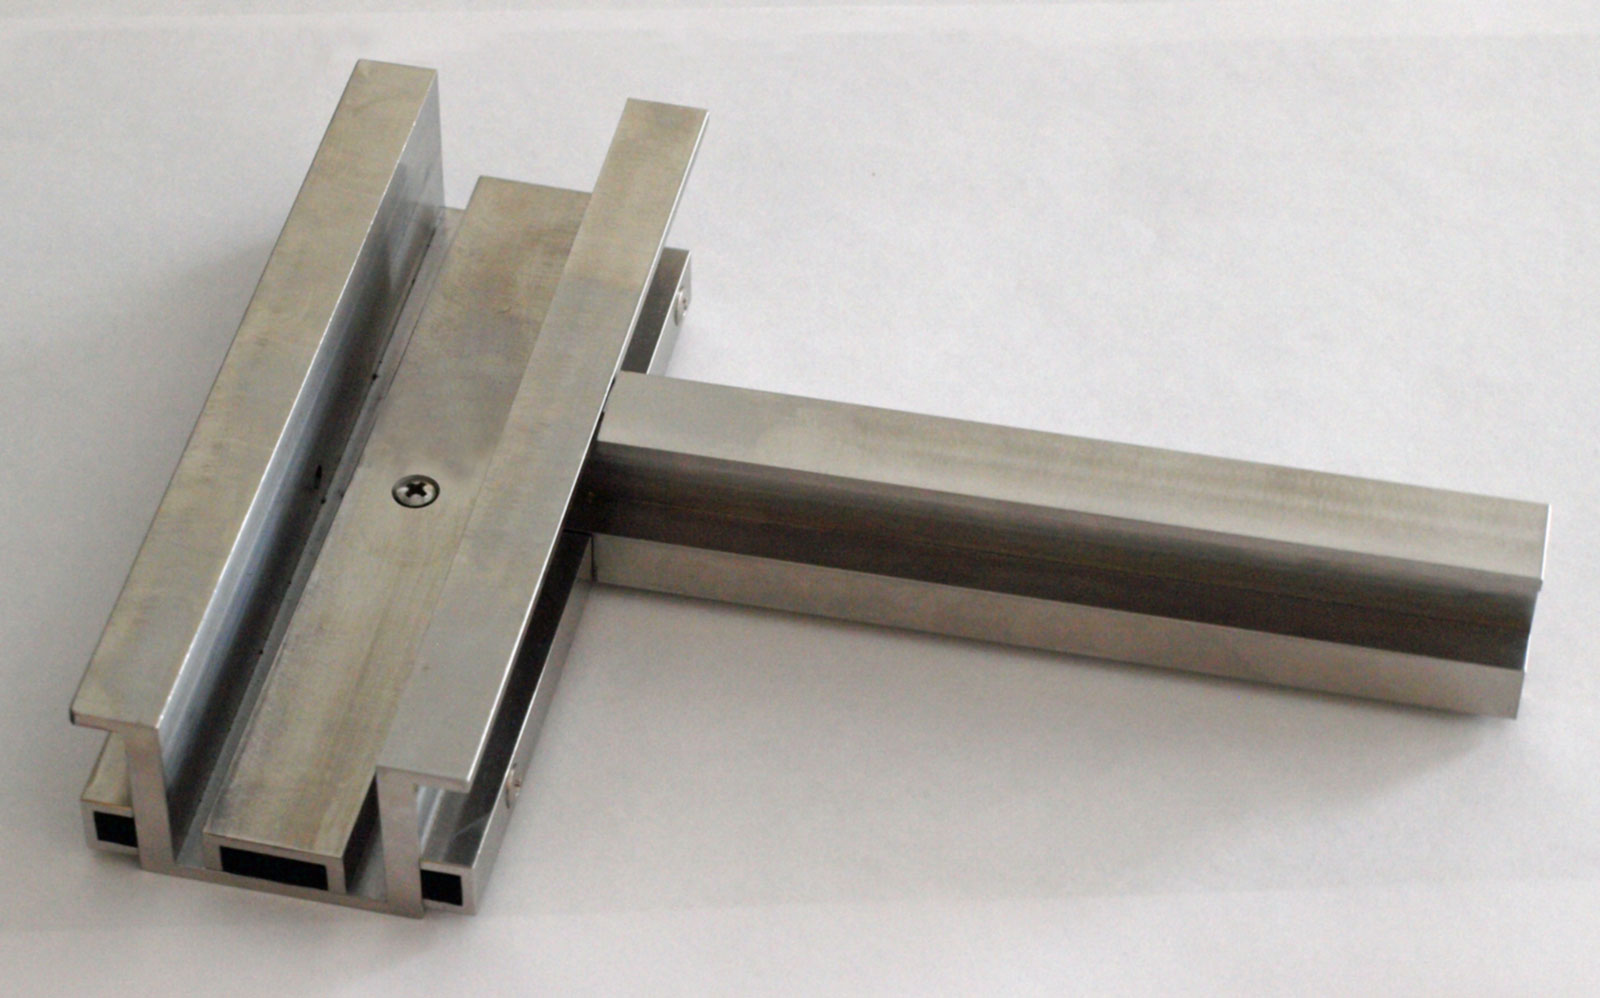 Machined Sample of the Custom Joinery used for the Stainless Steel Curtain Wall application.